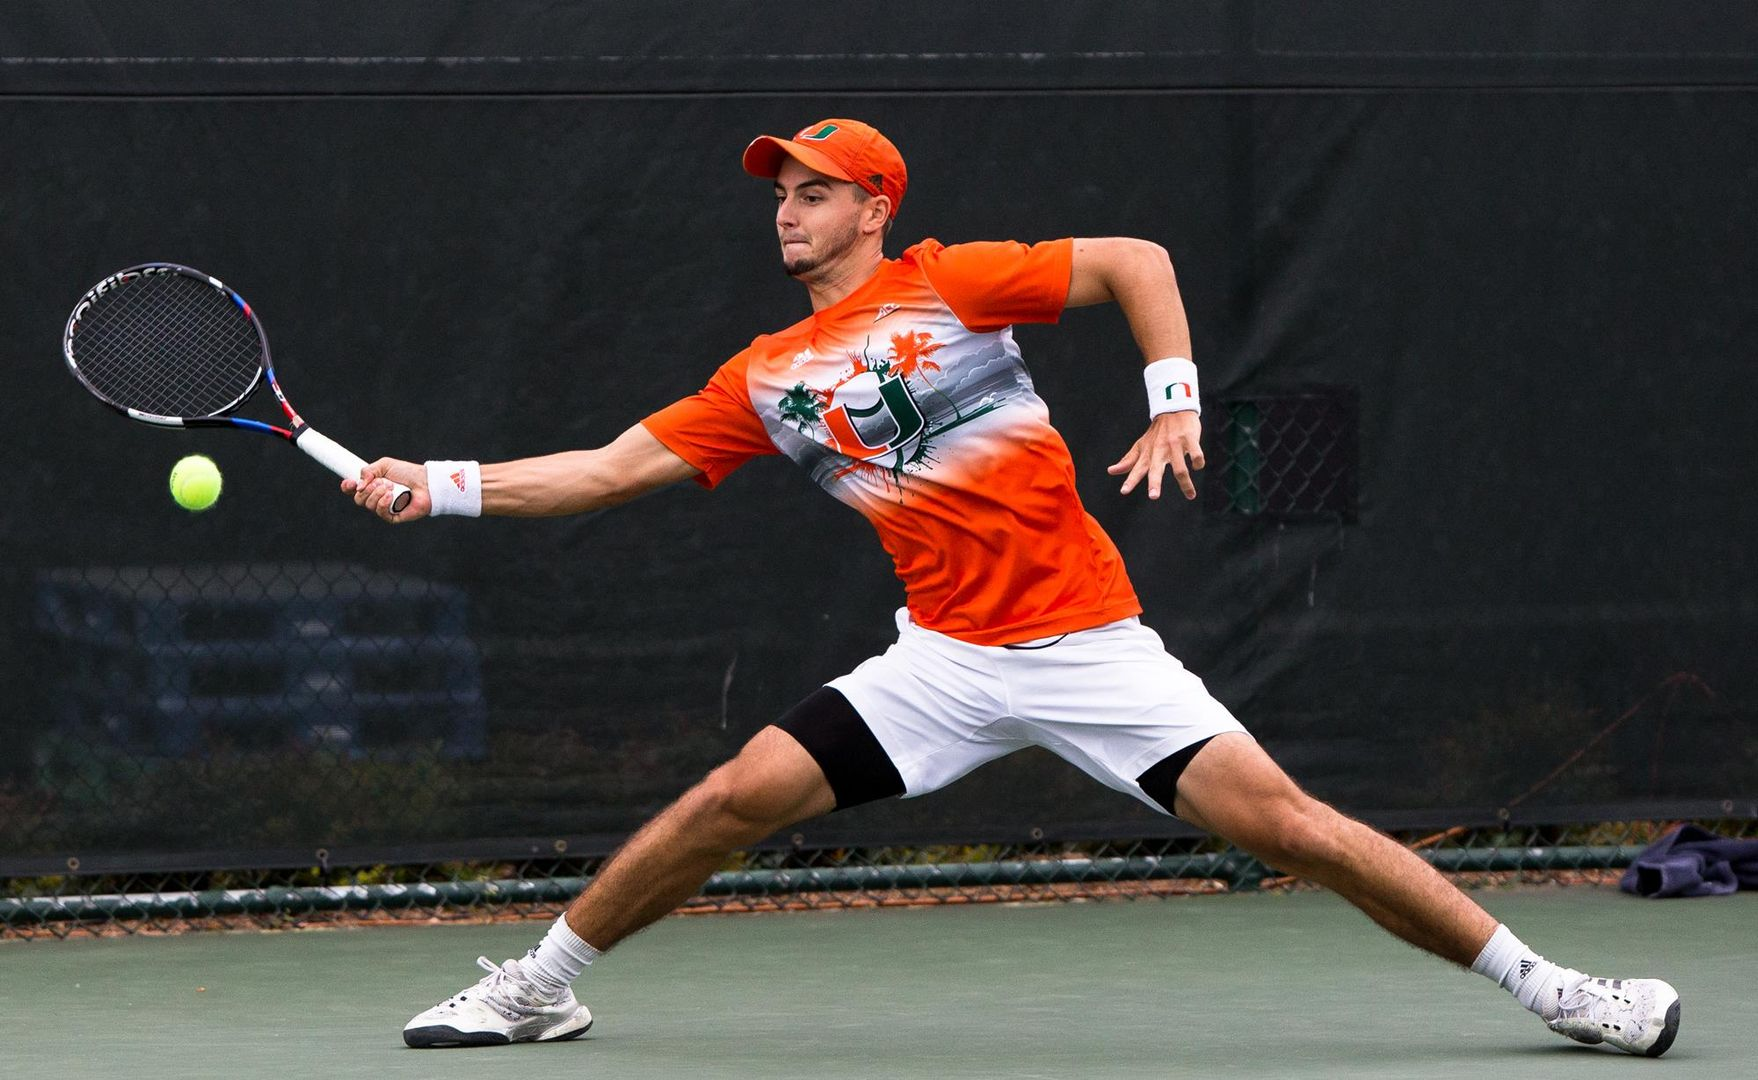 Canes Wrap Up the Fall Season in Texas